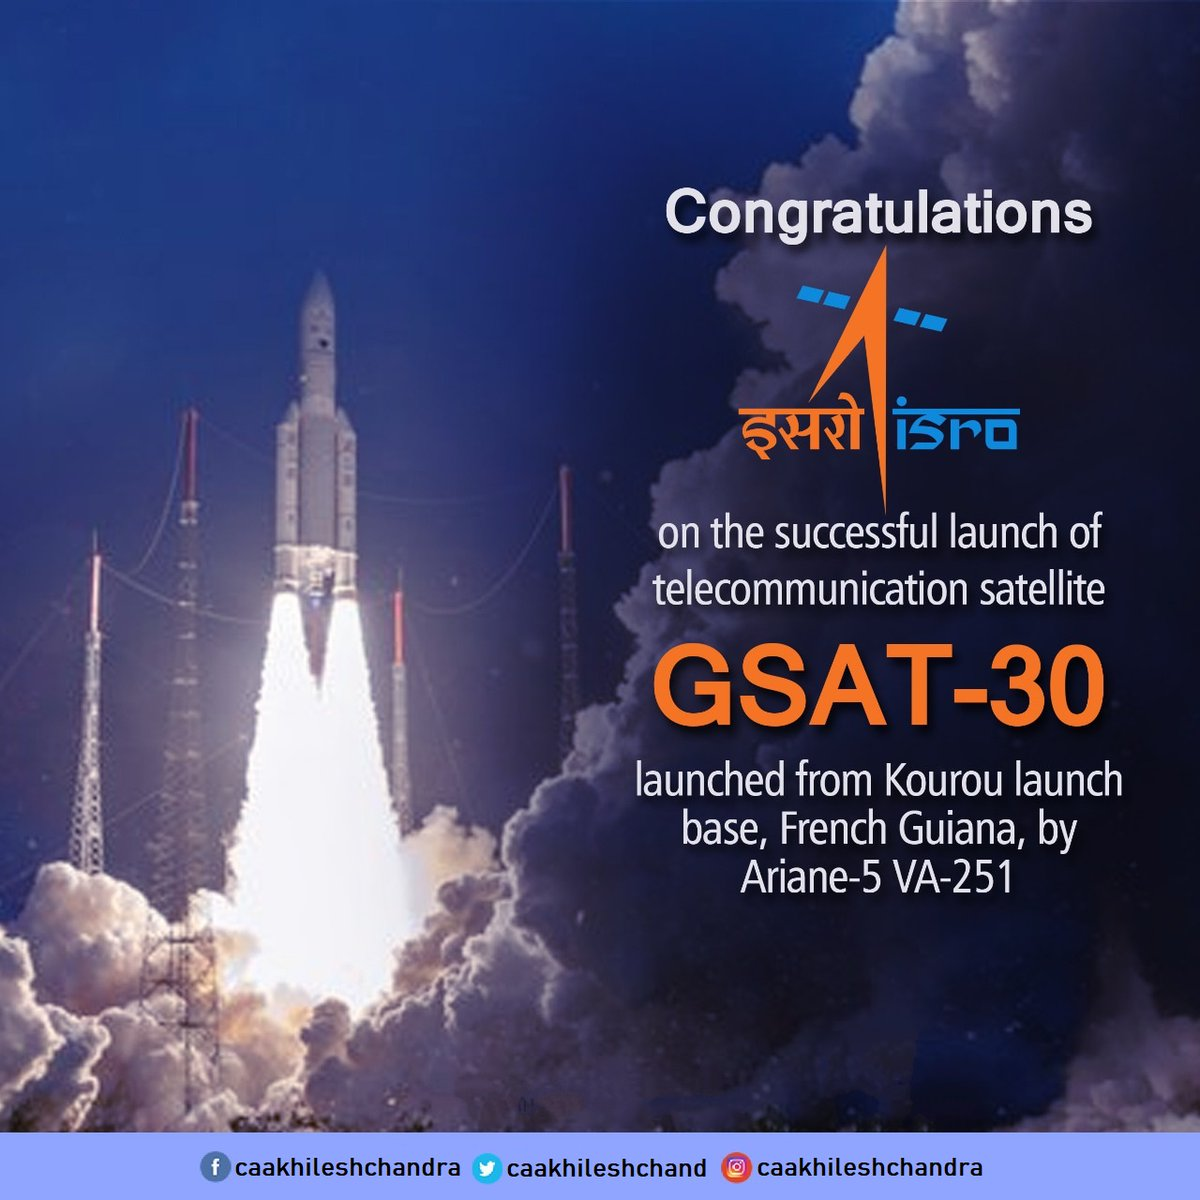 Congratulations to Team ISRO - Indian Space Research Organisation on the successful launch of telecommunication satellite #GSAT30 into a Geosynchronous Transfer Orbit by Ariane-5 VA-251.  #bjp #bjp4delhi #bjp4india #bjpdelhi #bjpindia #bharatiyajanataparty #bjymdelhi #bjpfamily pic.twitter.com/Qo6NRcoZqZ